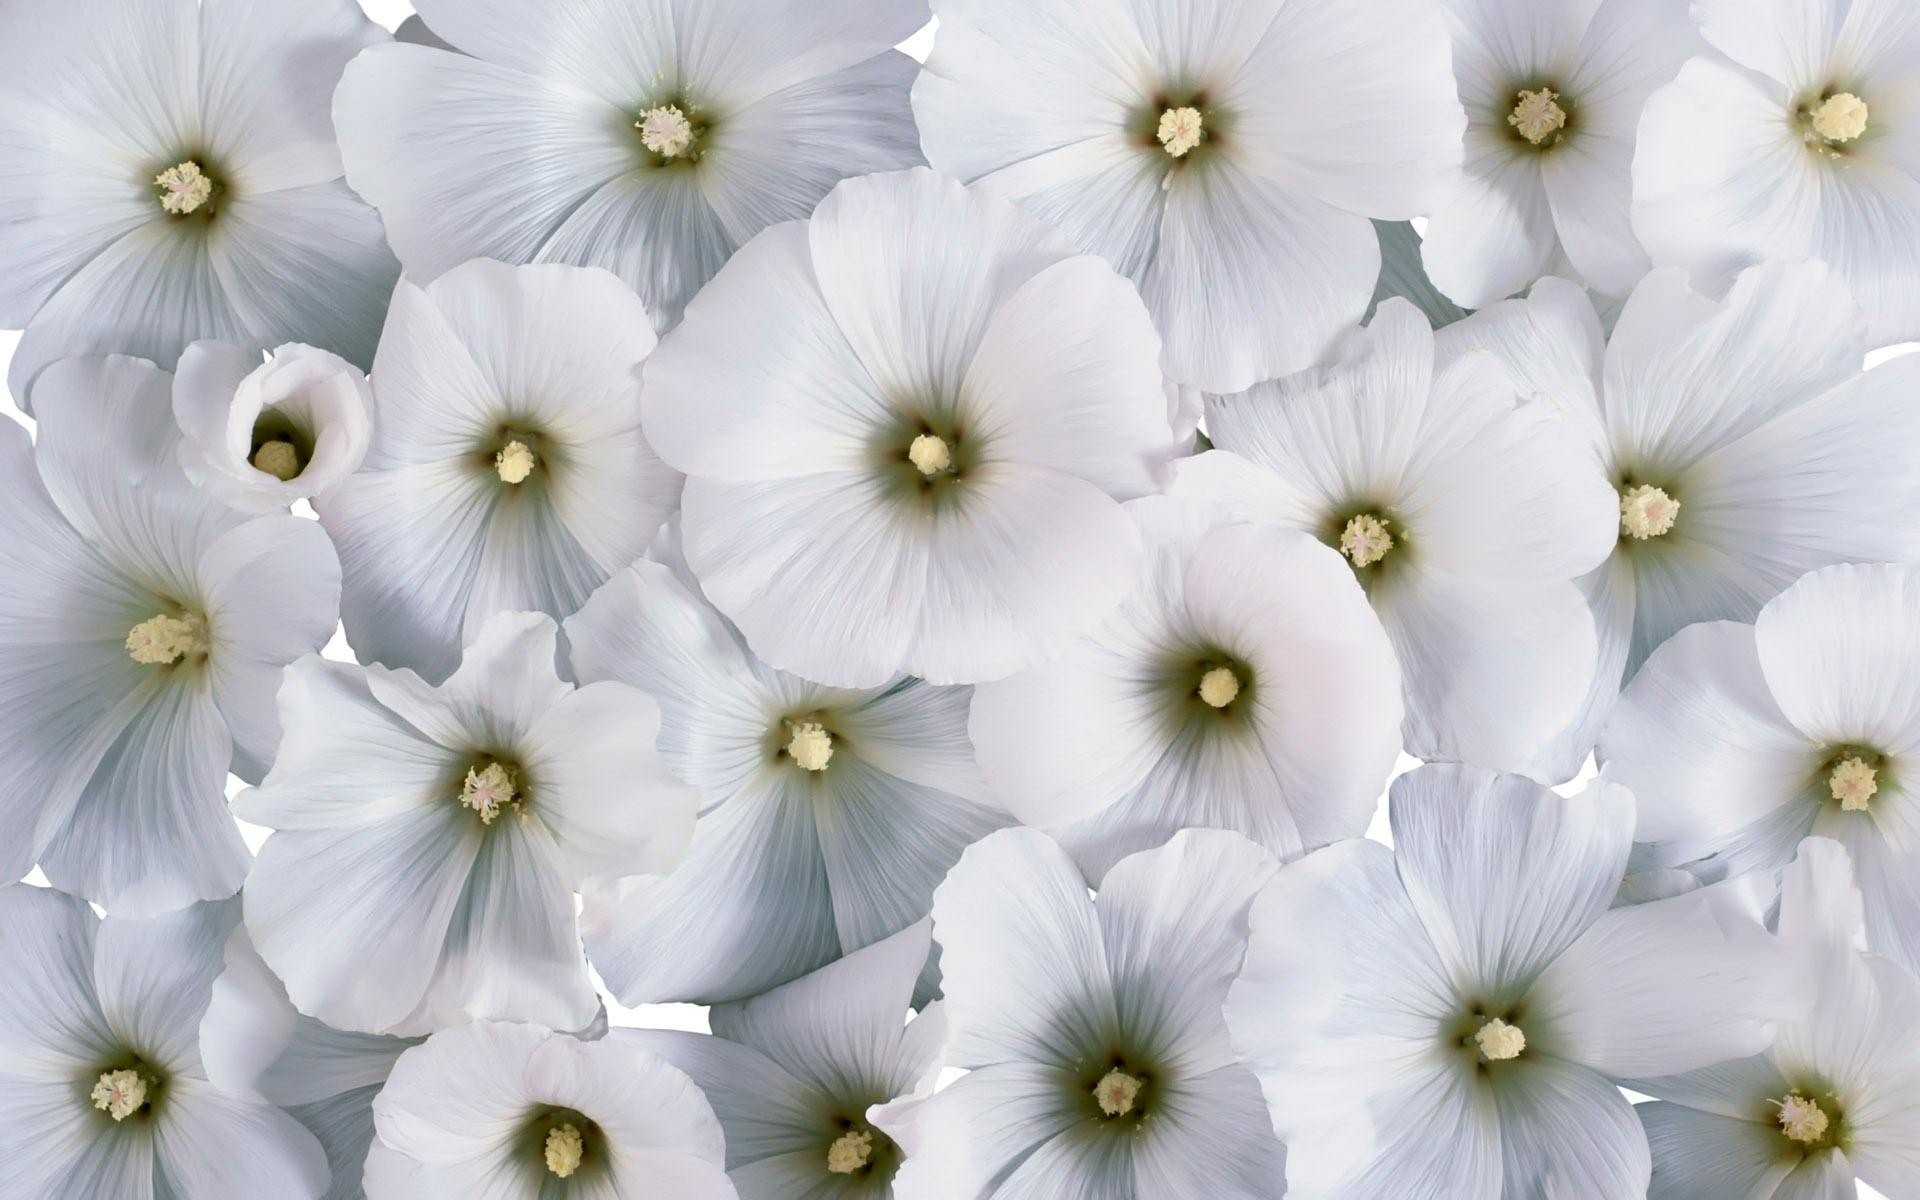 Res: 1920x1200, Natural White Flowers Background